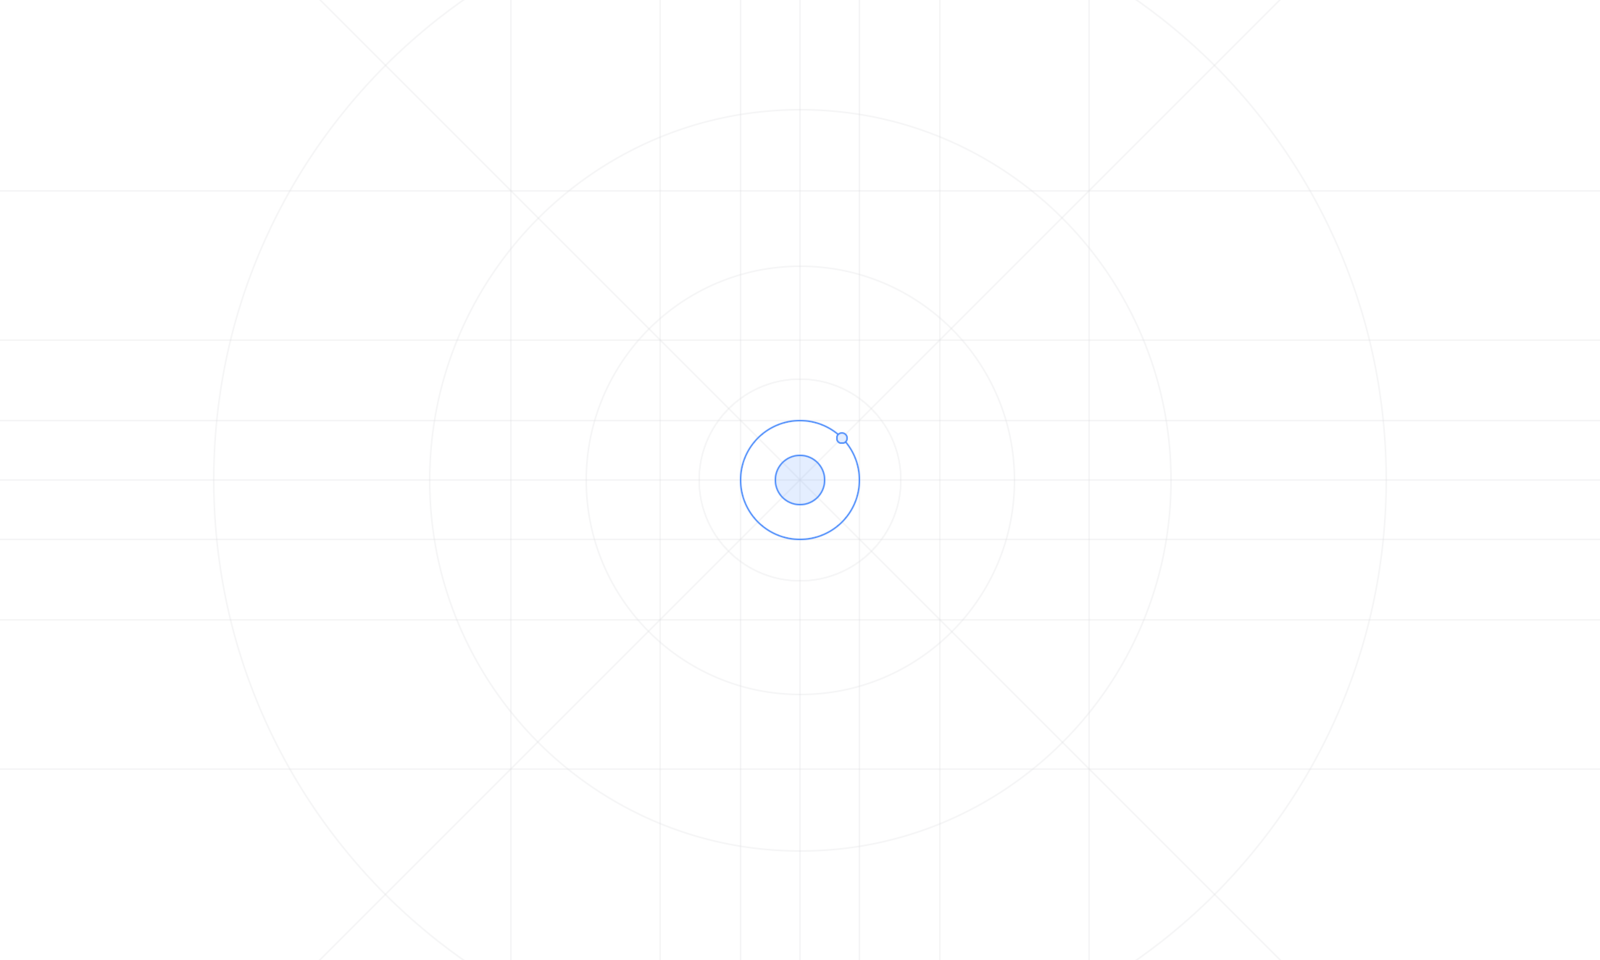 klu5/resources/android/splash/drawable-land-xxhdpi-screen.png